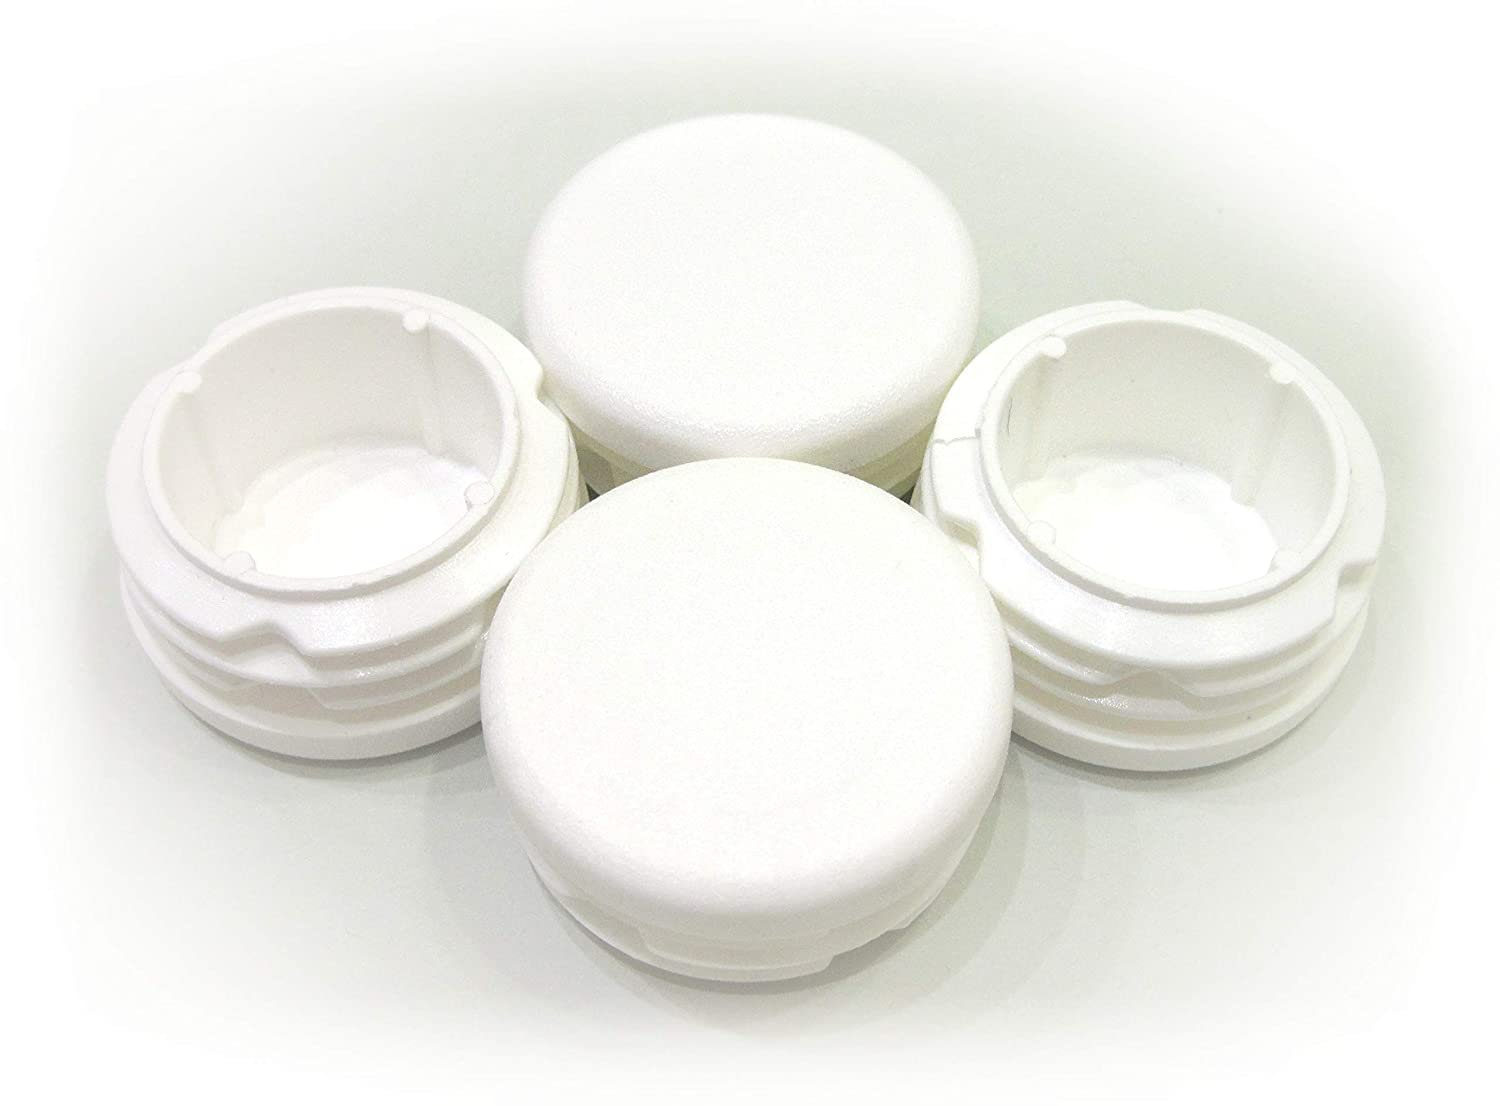 4pcs Pack: 1 3/8 Inch (35mm) Round White Plastic End Cap (for Hole Size from 1 5/32 to 1 5/16, Including 1 1/4 inches, 29-33 mm), Furniture Finishing Plug